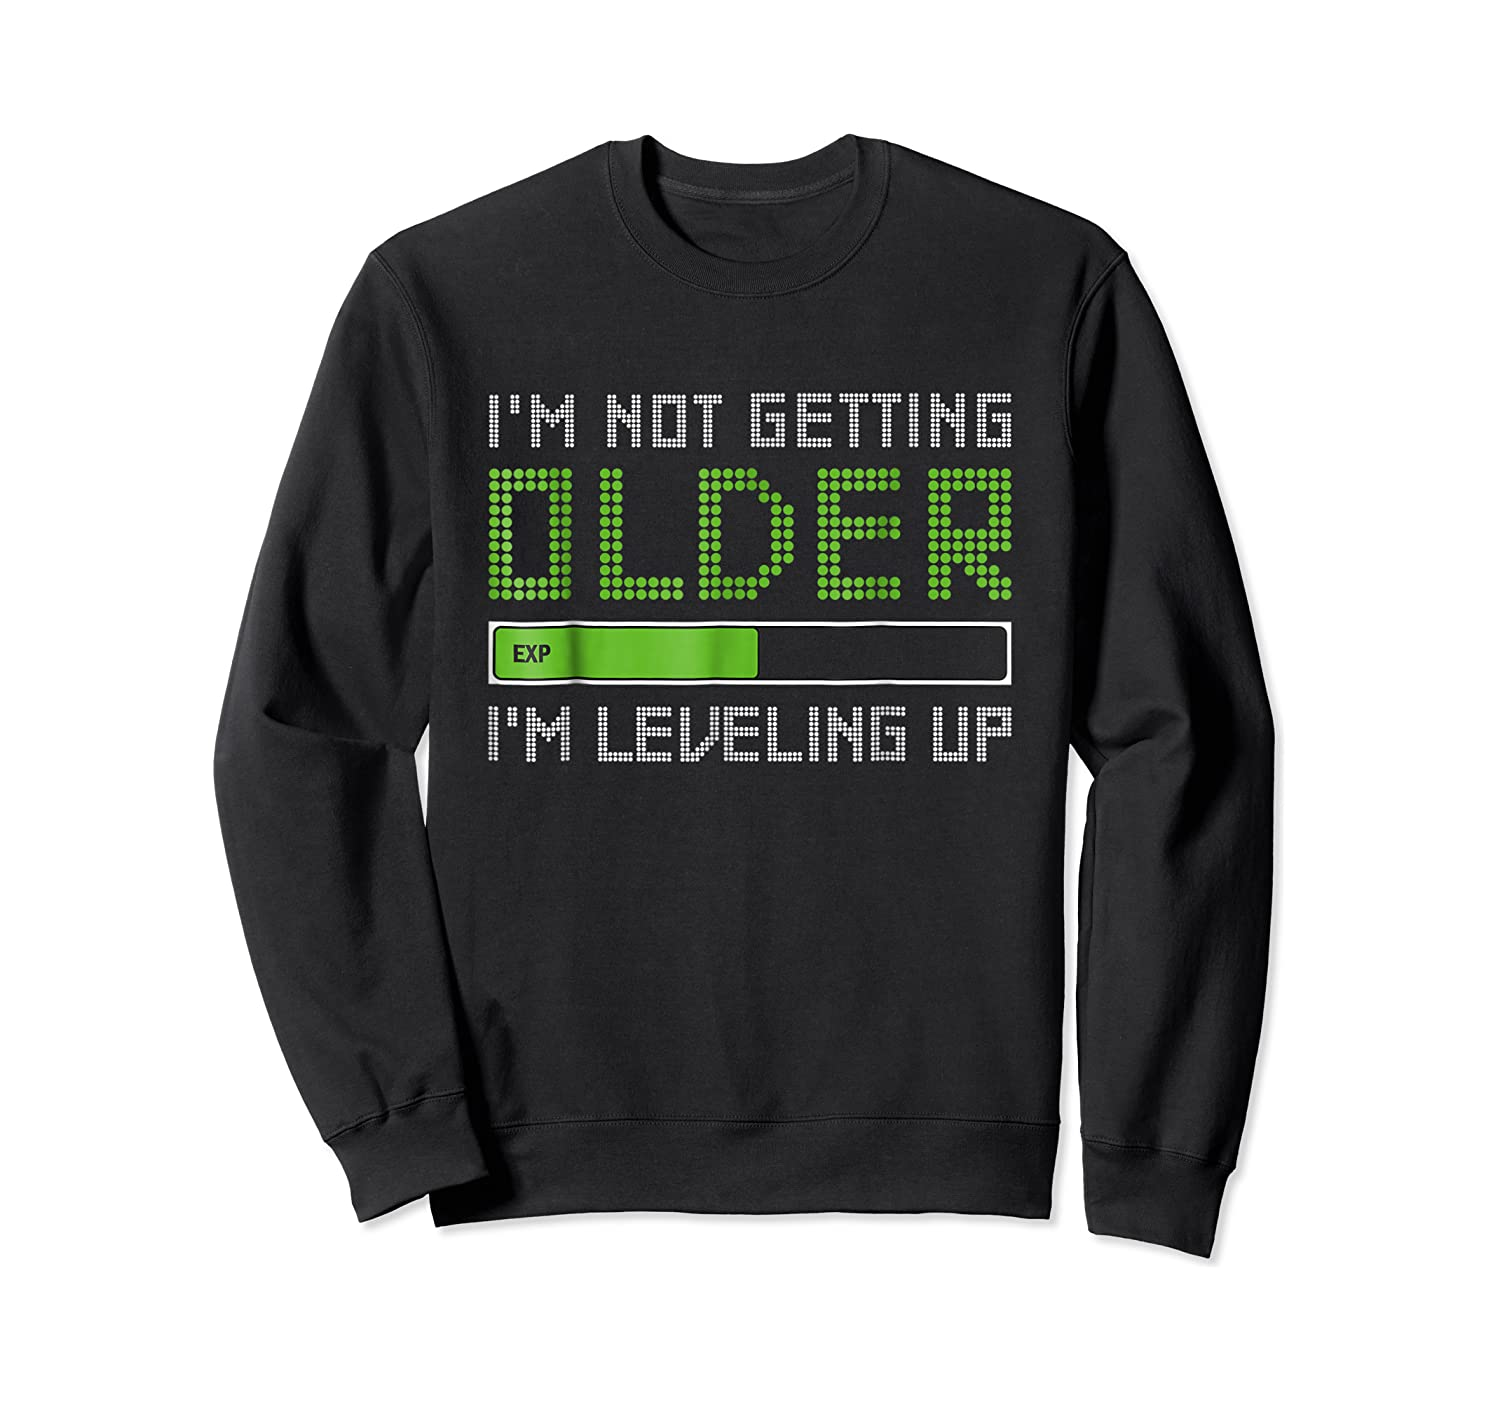 I'm Not Getting Older Leveling Up Shirt 2018 Funny Gamer Tee Crewneck Sweater